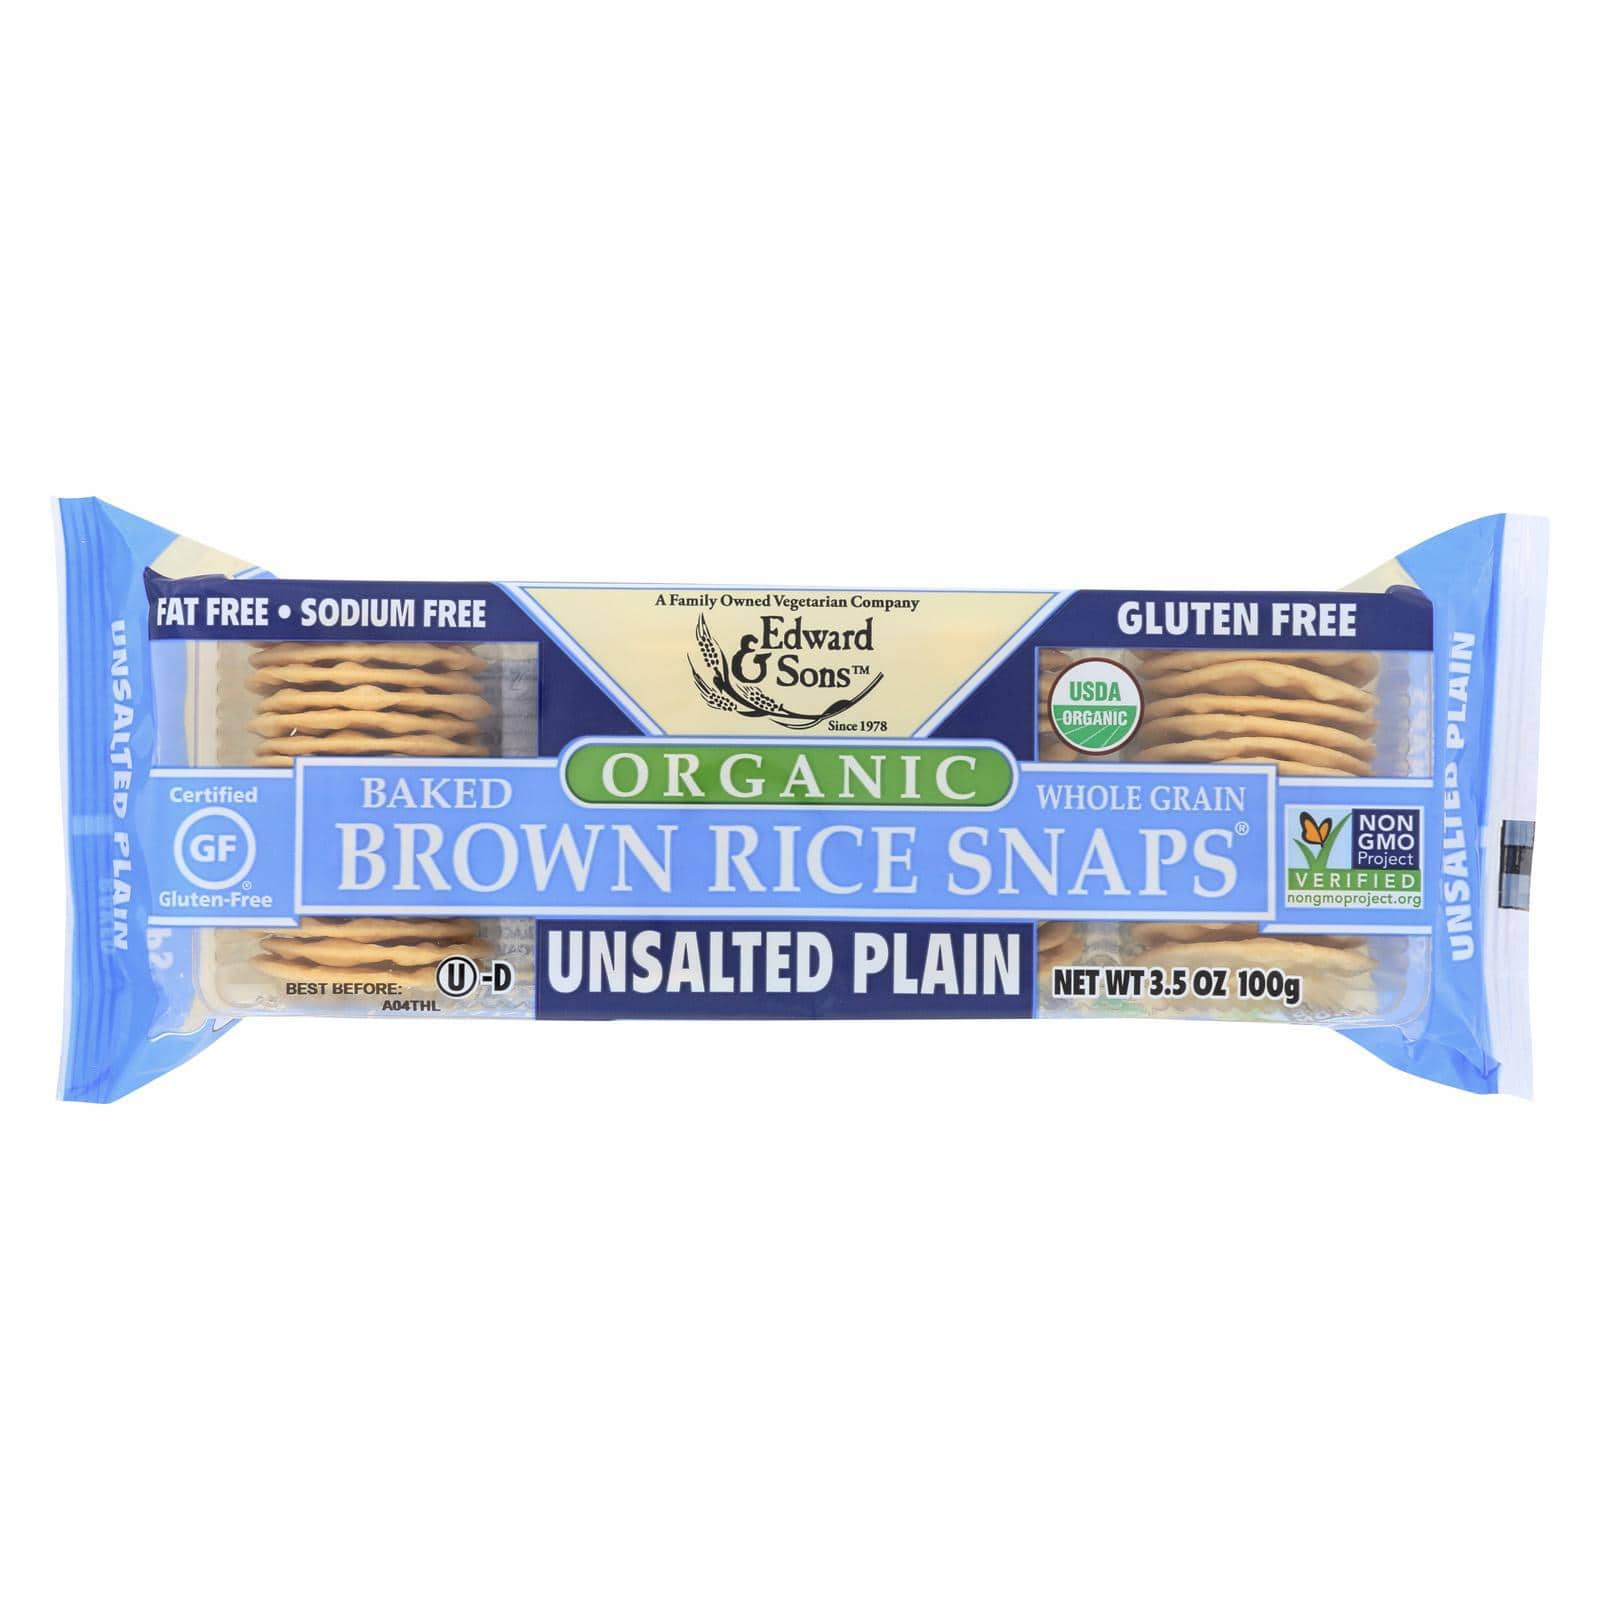 Edward And Sons Crackers & Crispbreads Edward And Sons Brown Rice Snaps - Unsalted Plain - Case Of 12 - 3.5 Oz.